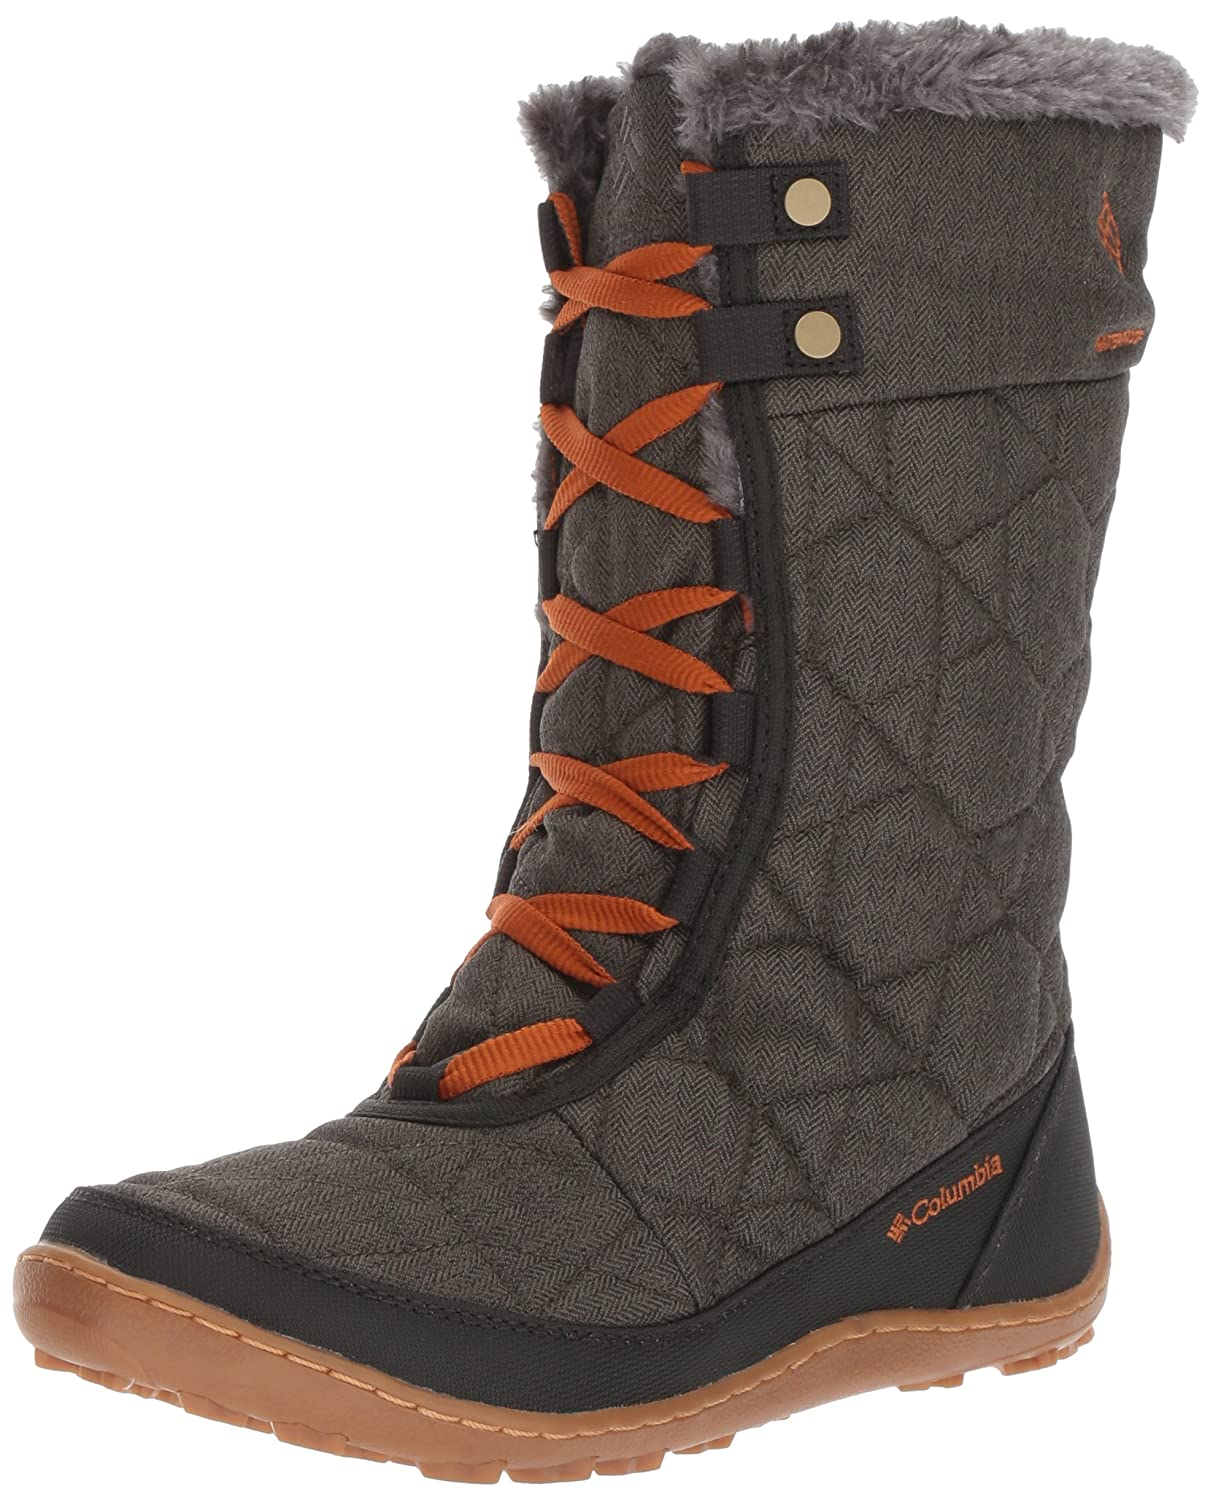 Columbia Women's Minx Mid Alta Omni-Heat Snow Boot B01NCNOOCI 10 B(M) US|Nori, Bright Copper